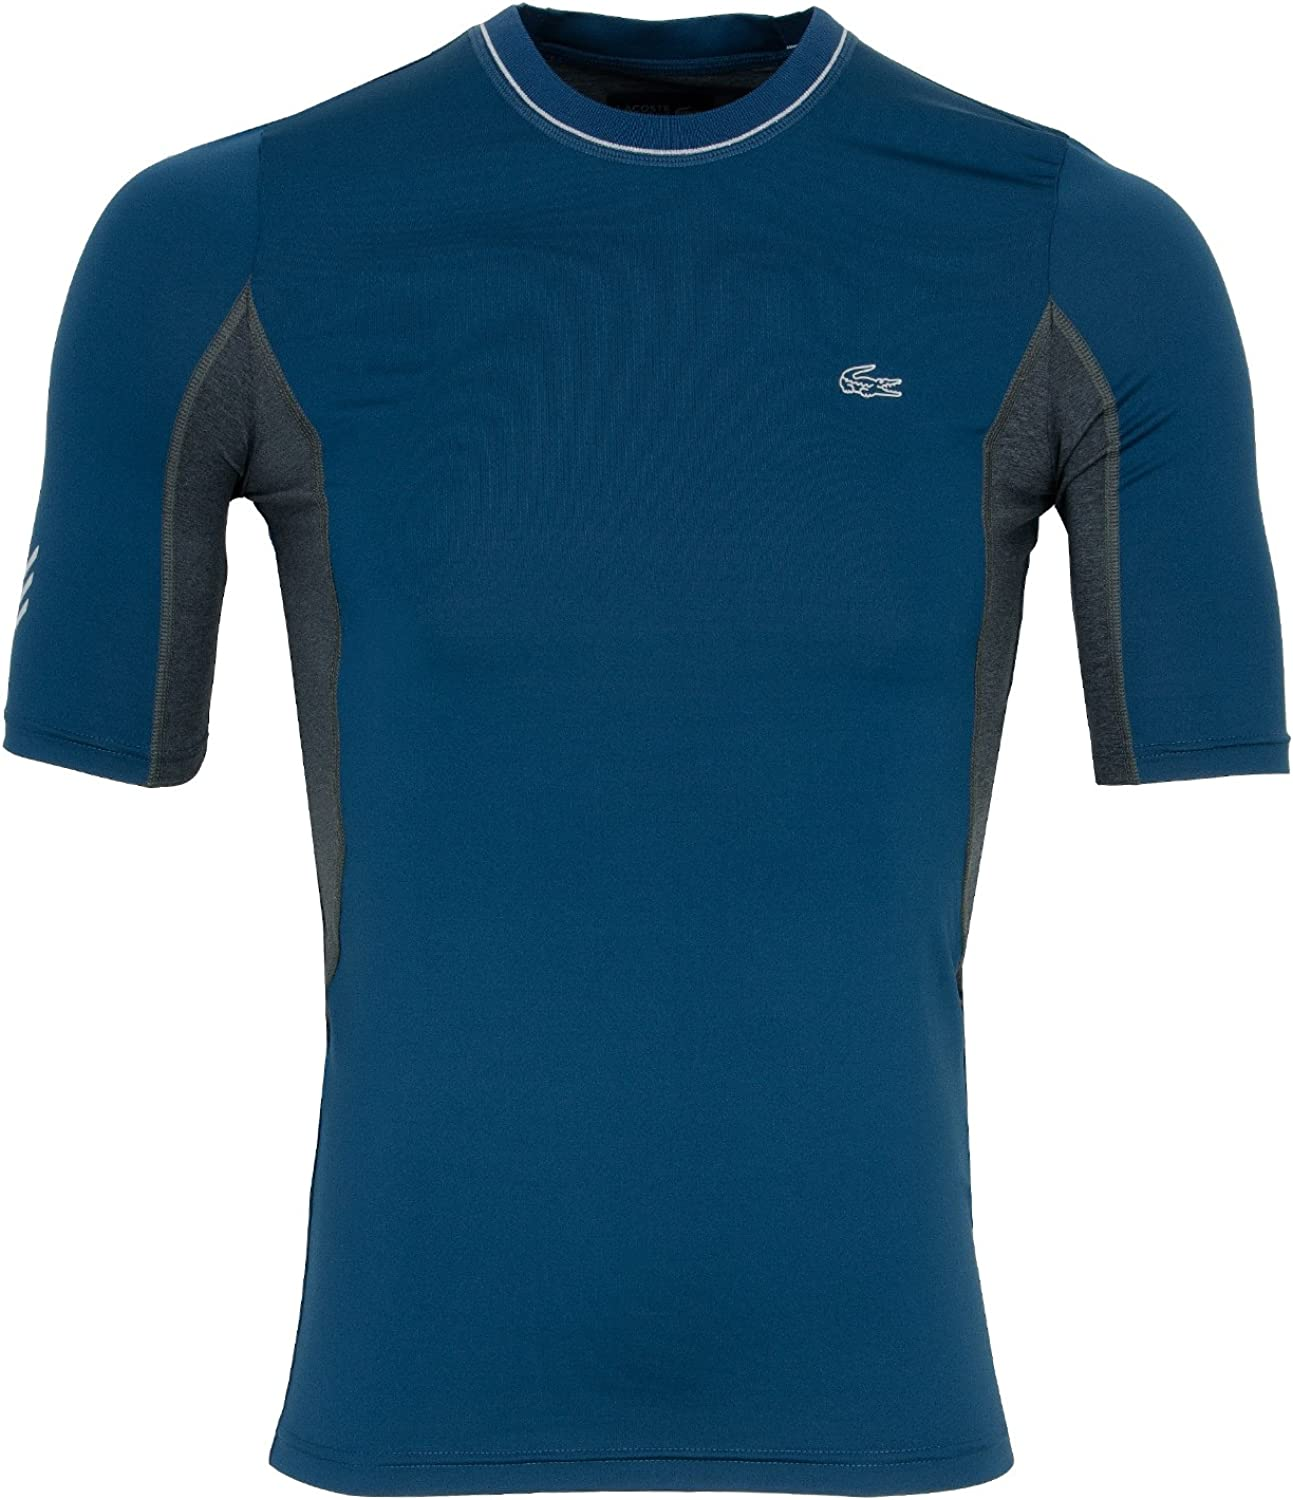 Lacoste Sport Compression Base Layer